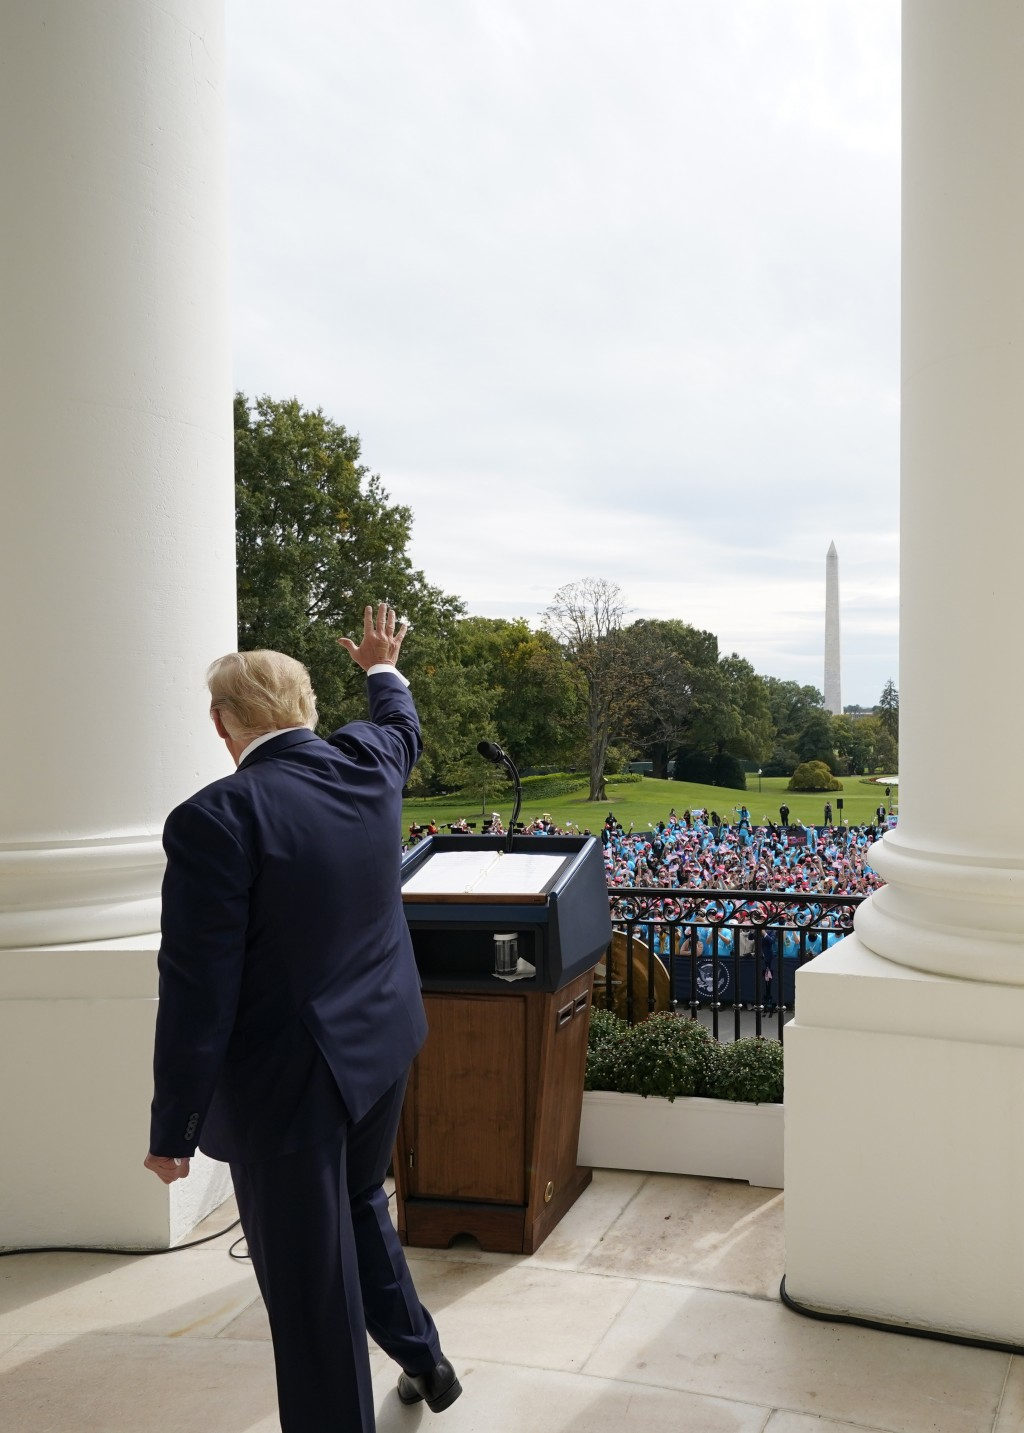 FILE - In this Oct. 10, 2020, file photo President Donald Trump waves from the Blue Room Balcony of the White House to a crowd of supporters in Washin...